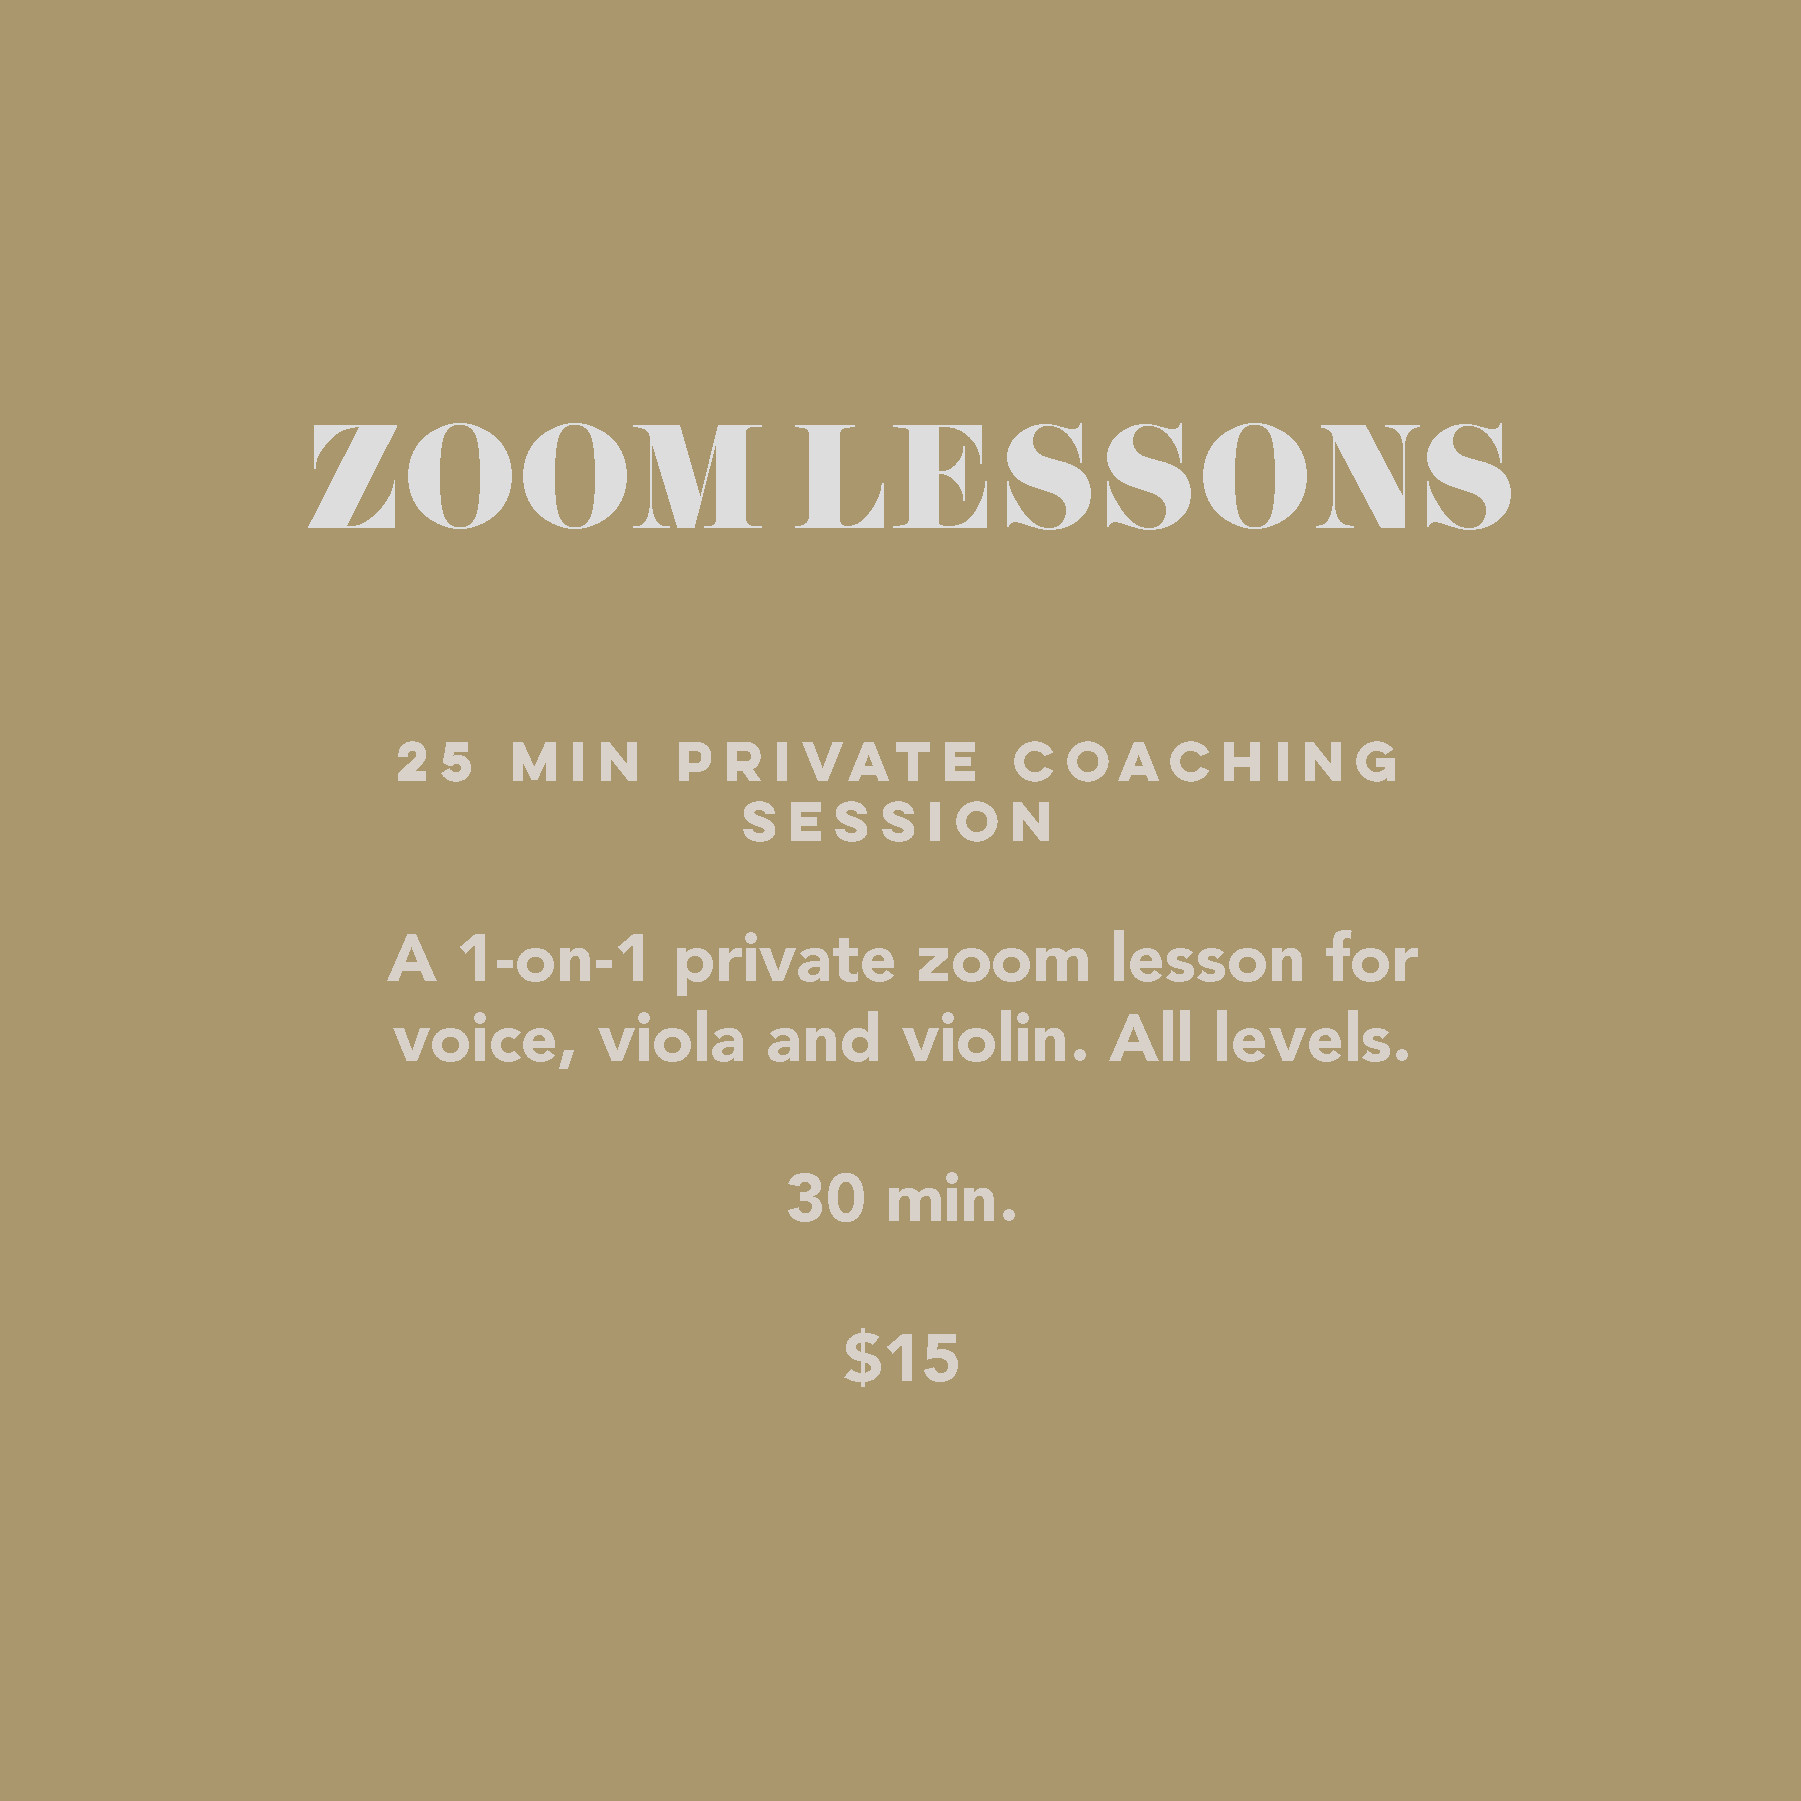 25 min Private Coaching Session